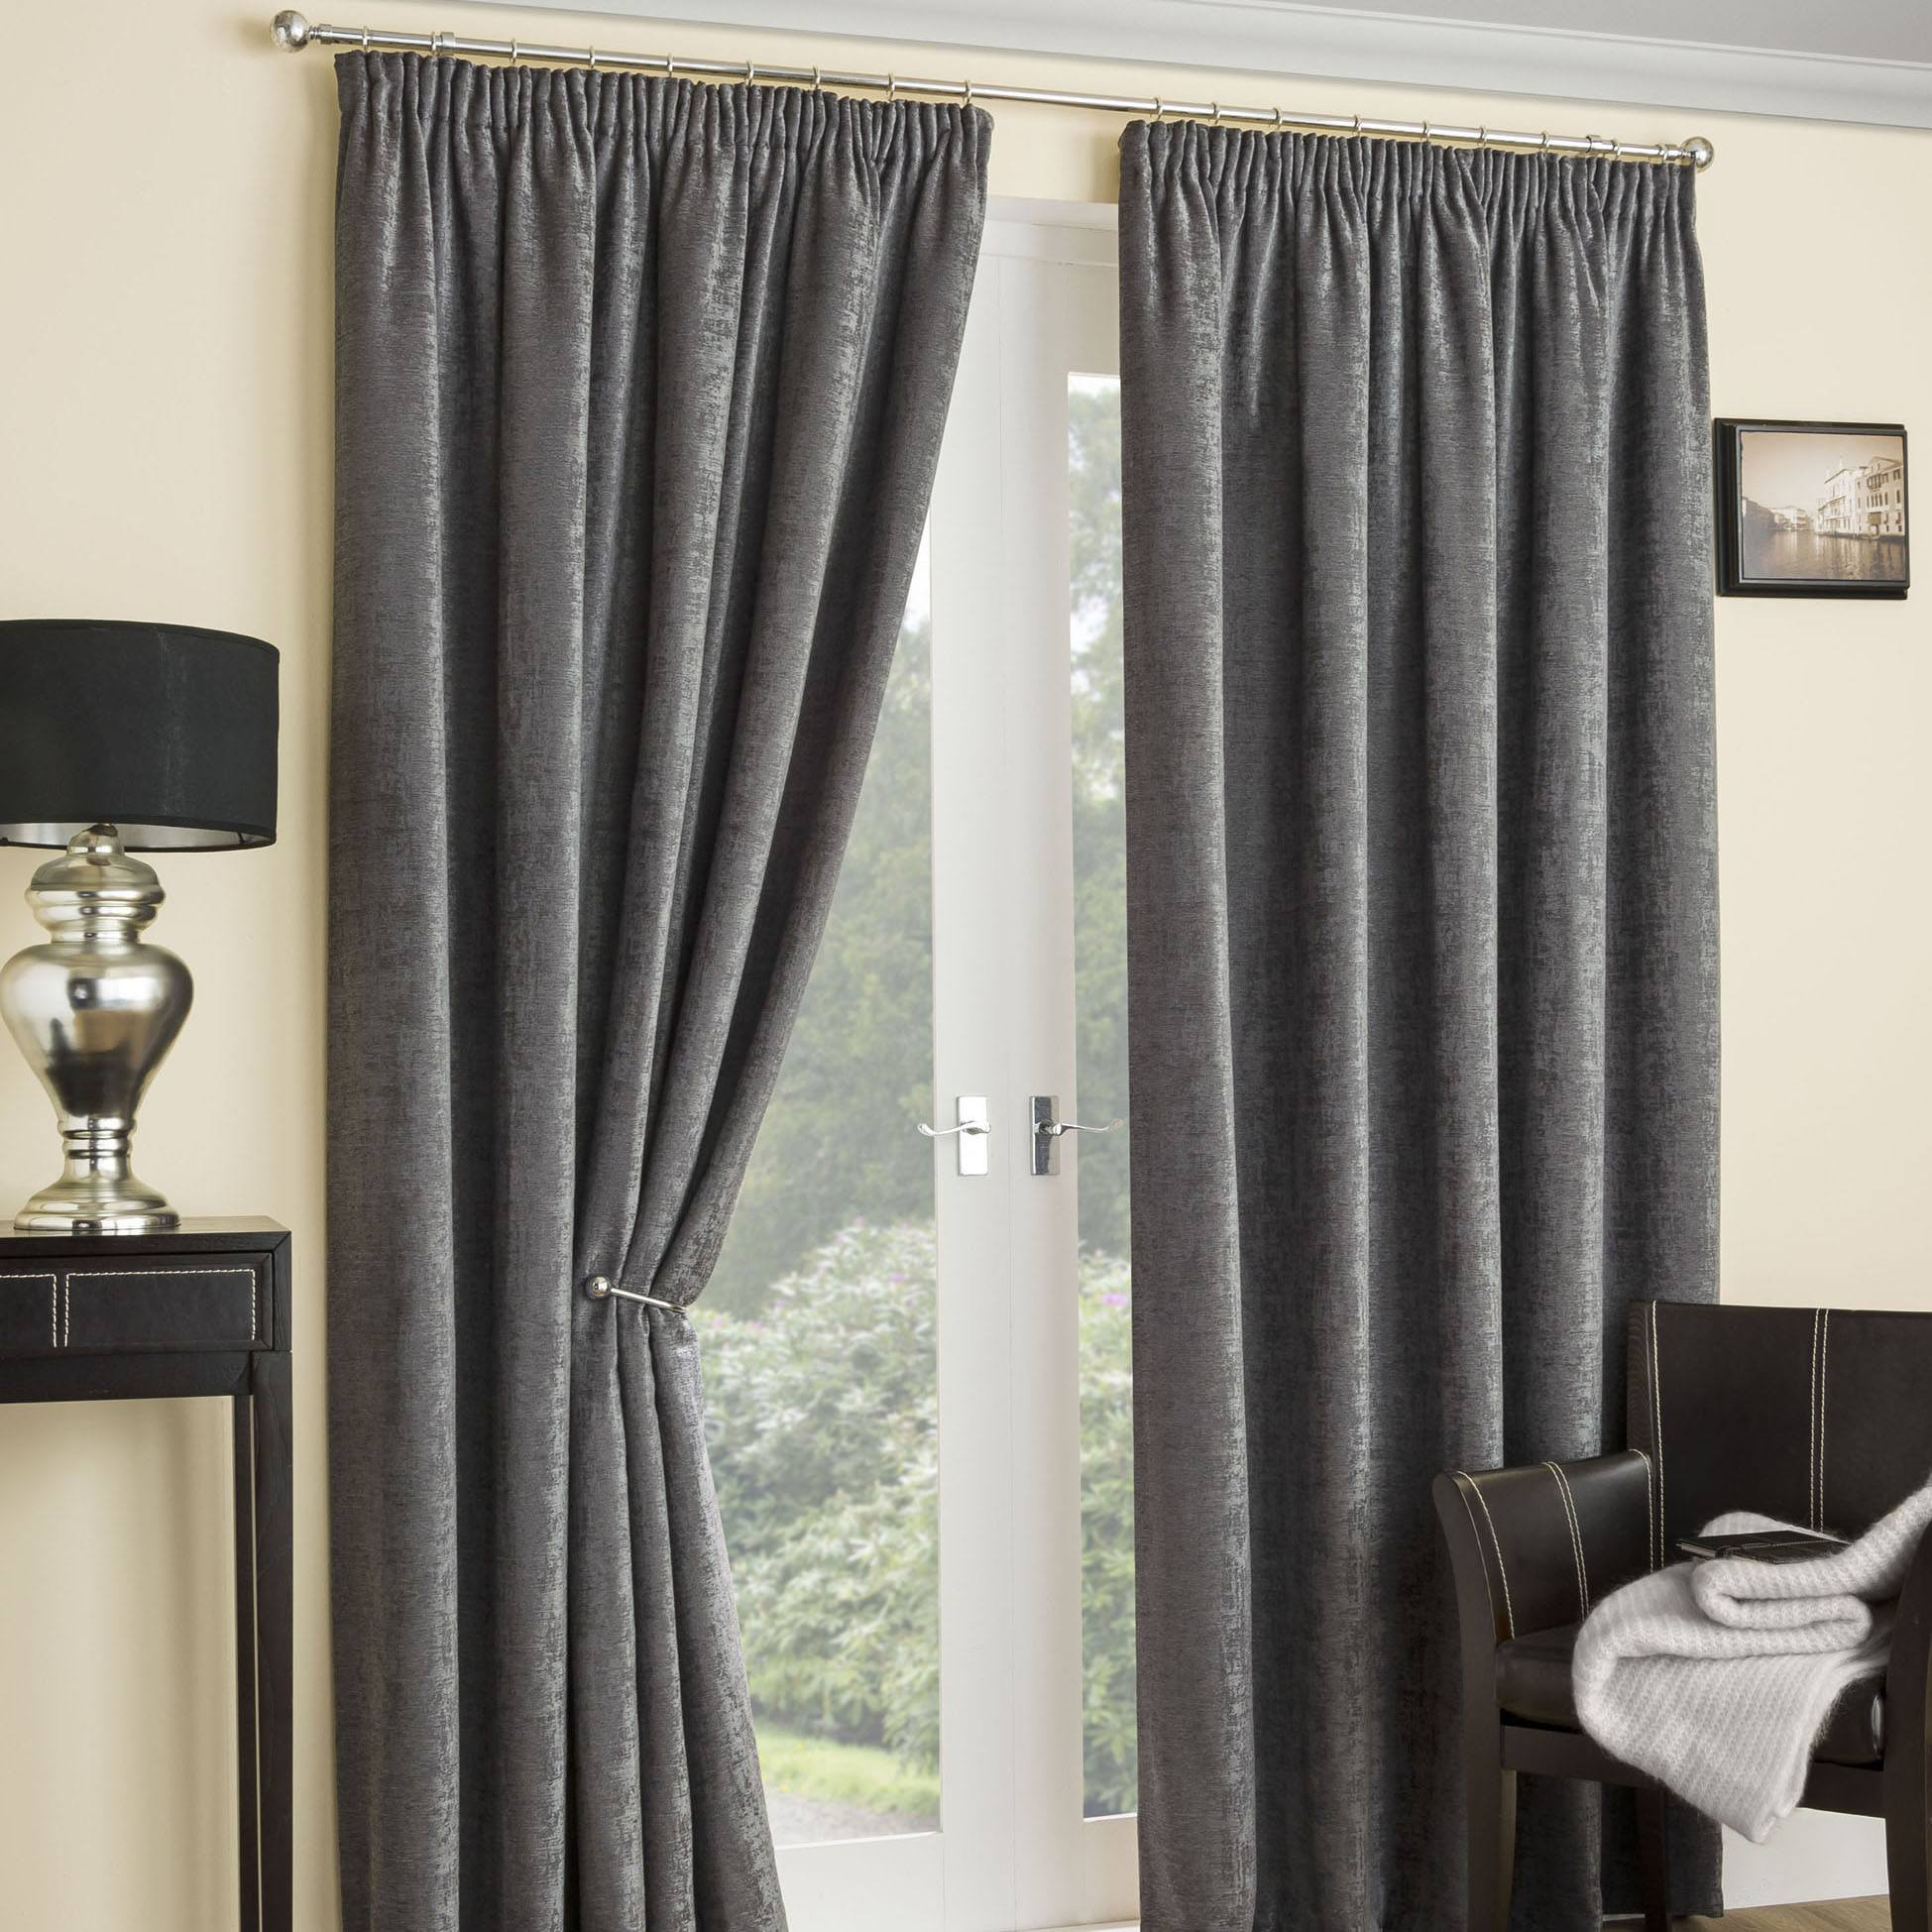 Stockists of Grey Balmoral Thermal Interlined Ready Made Curtains